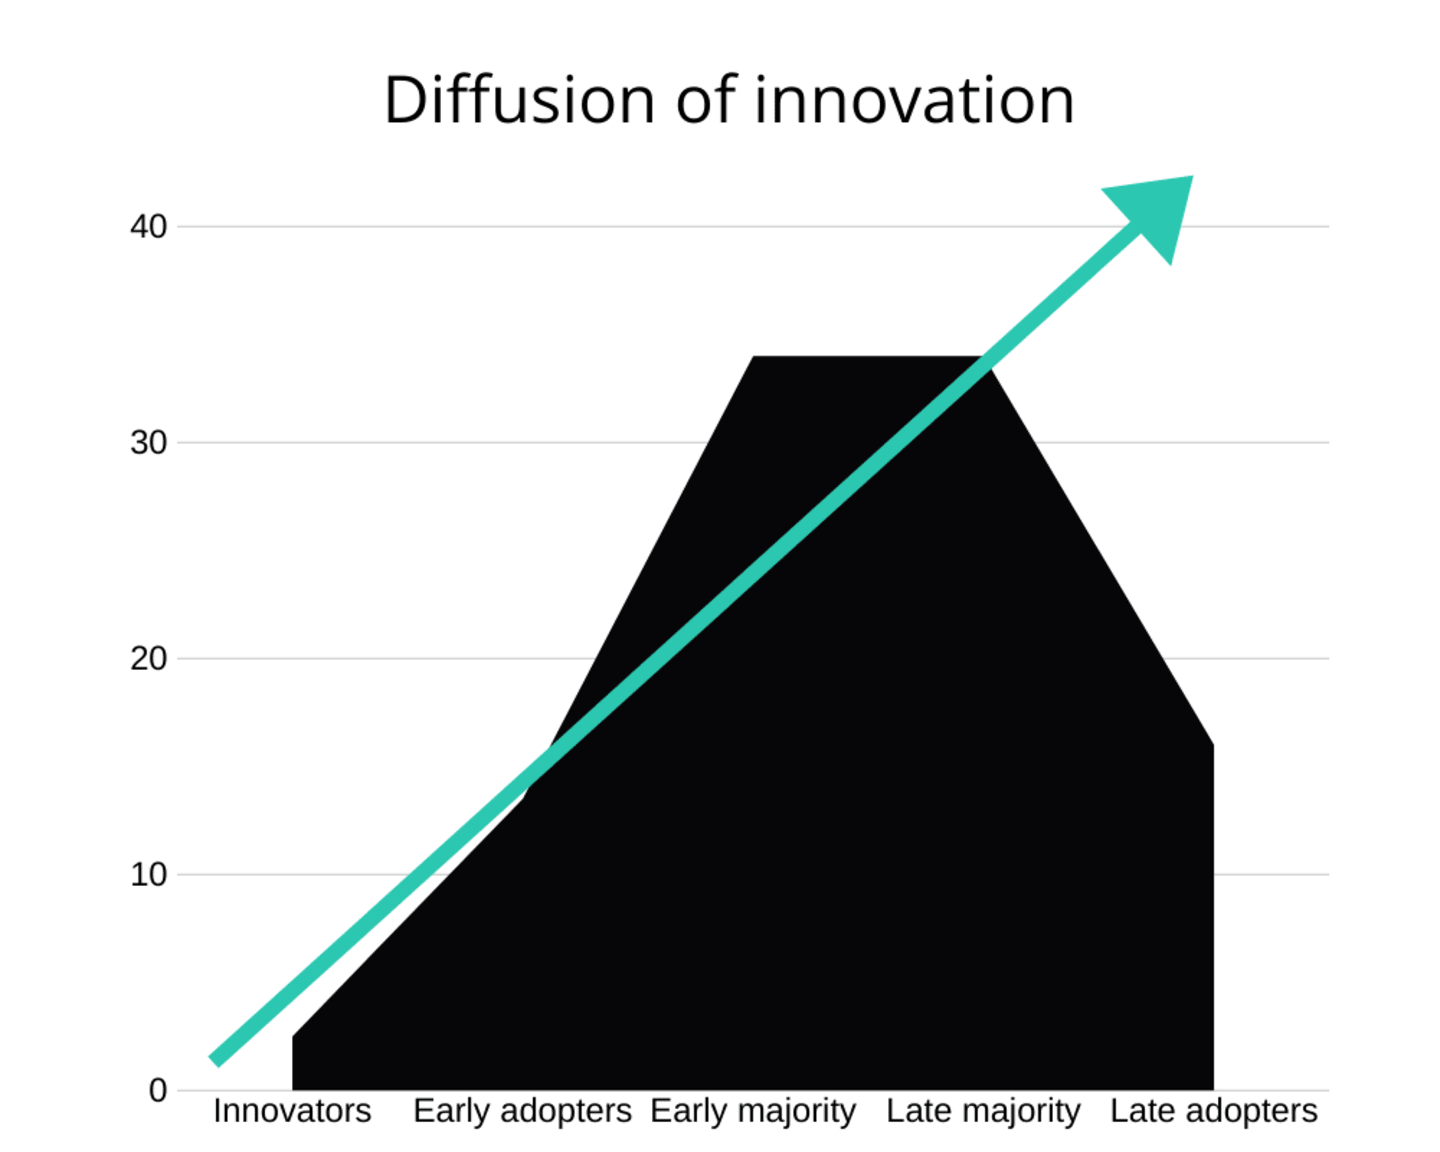 A graph showing the basic model of the 'diffusion of innovation.' A green line shows that even while rates of adoption fluctuate over time, with a small group of innovators followed by increasingly larger groups until the late majority and then late adopters embrace the innovation, its spread throughout society continues to grow.